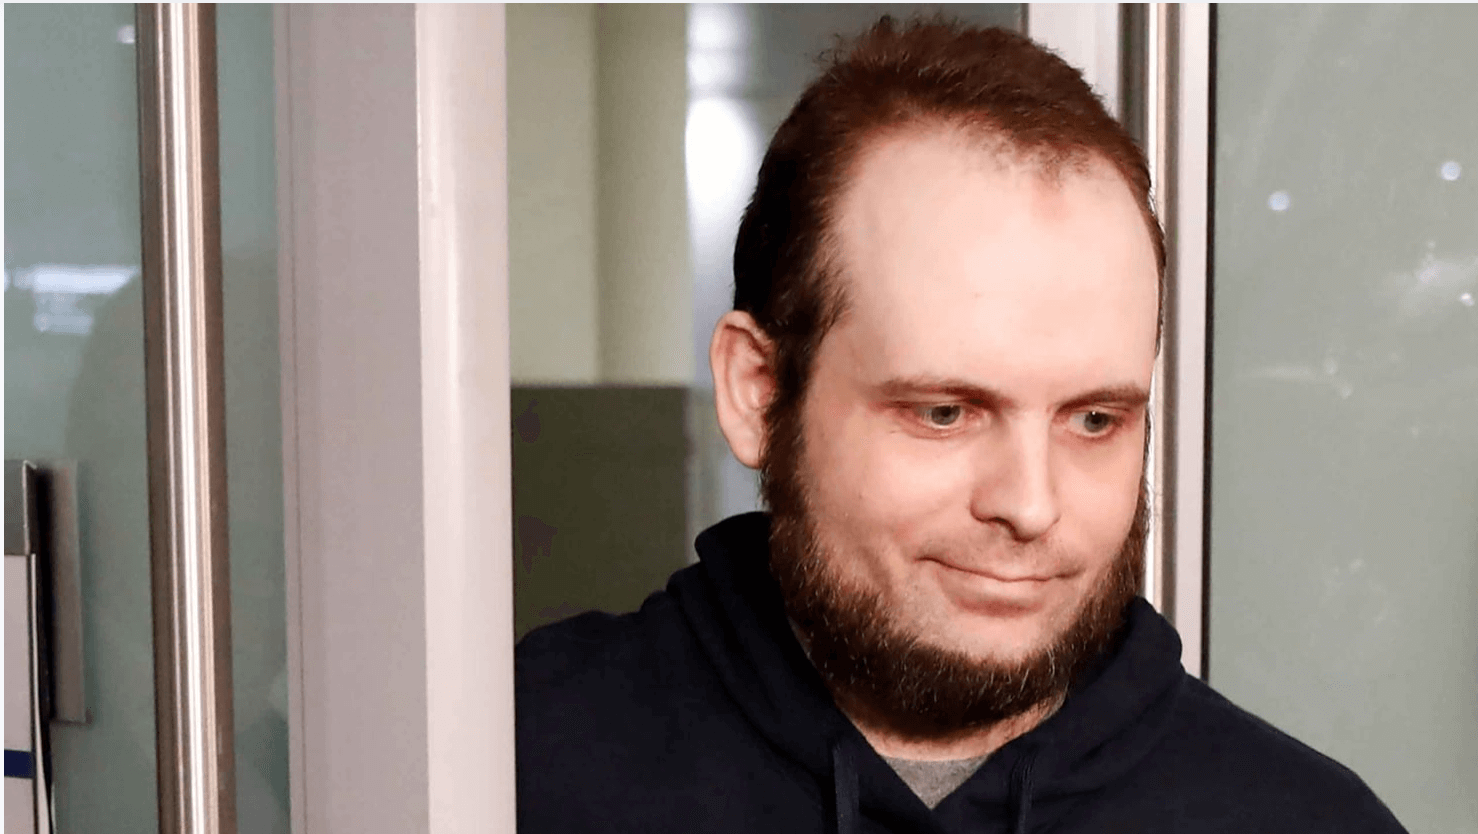 Joshua Boyle Charged With Assault: Was He Re-Enacting The Traumas Of Taliban Captivity?